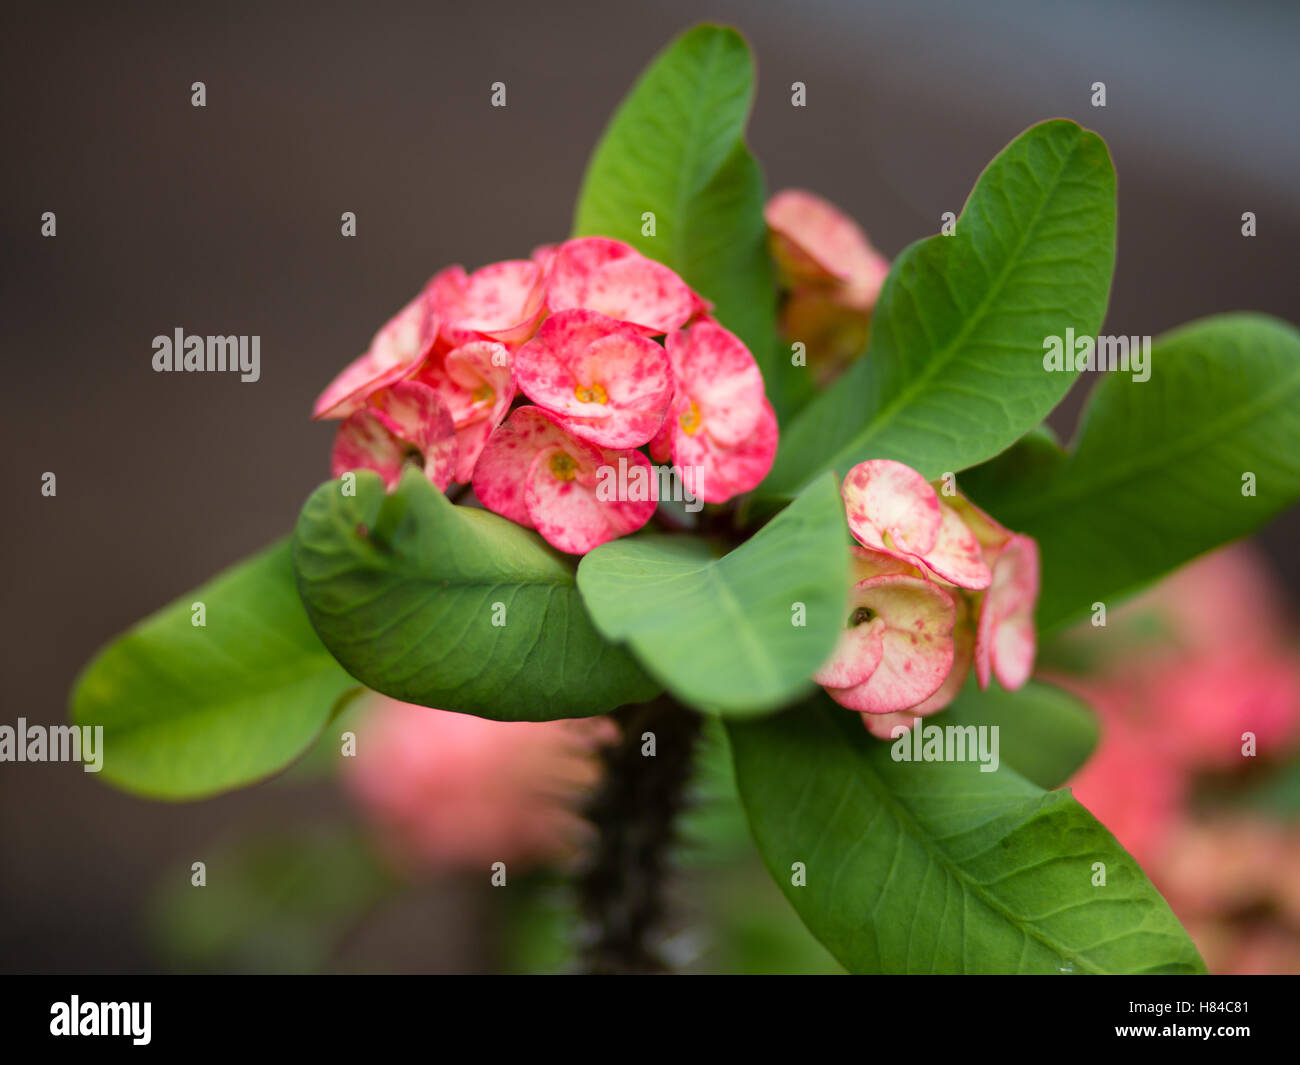 Pink Flowers In Indonesia Stock Photo 125487265 Alamy